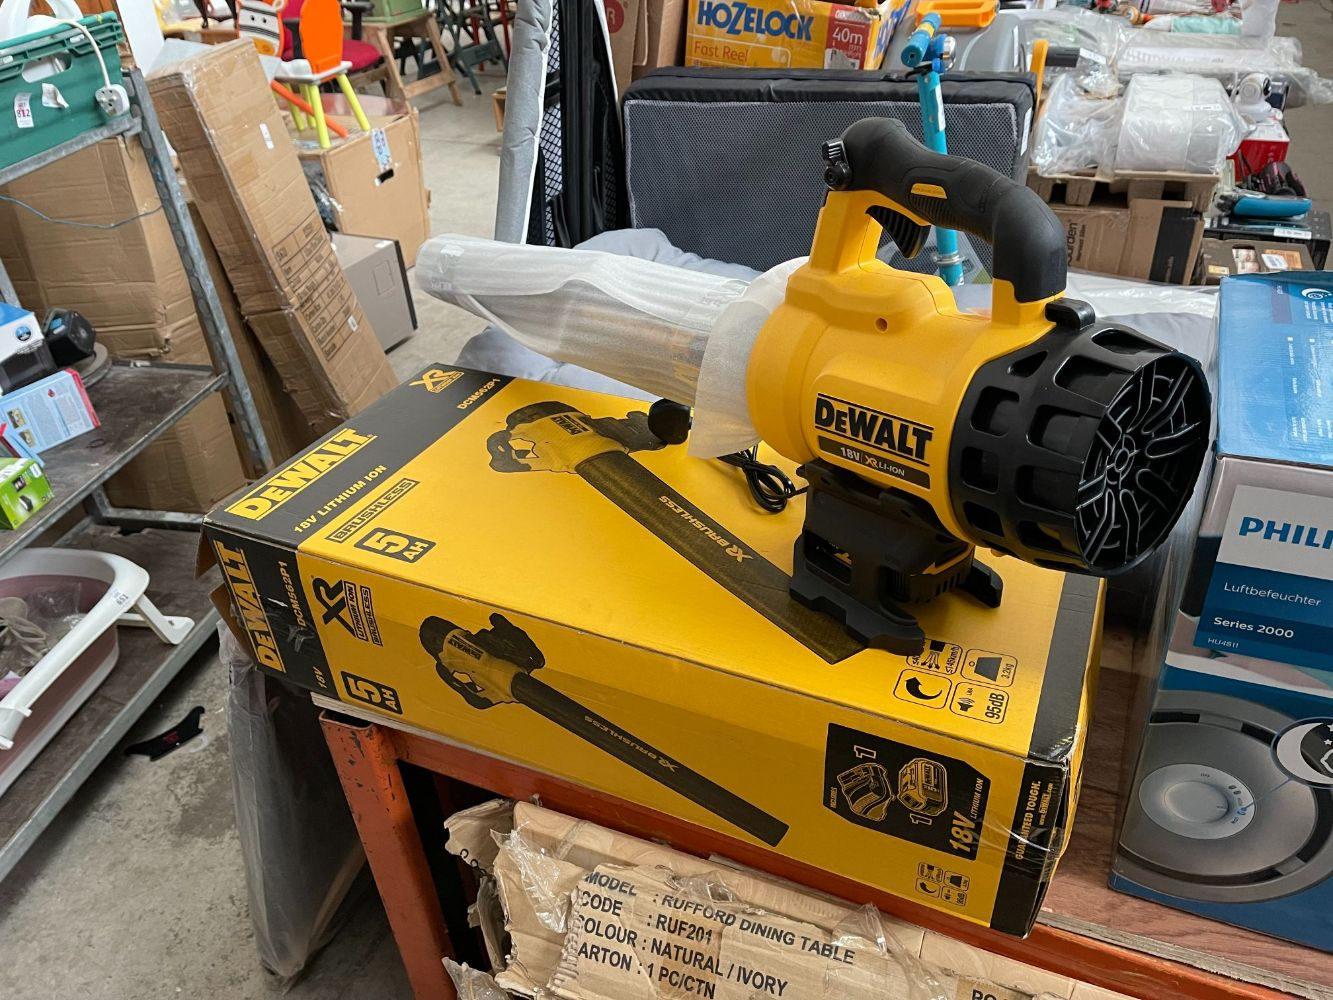 GENERAL ONLINE AUCTION - TOOLS - FURNITURE - HOUSEHOLD ITEMS - 24TH JUNE ENDING FROM 7PM -  P&P